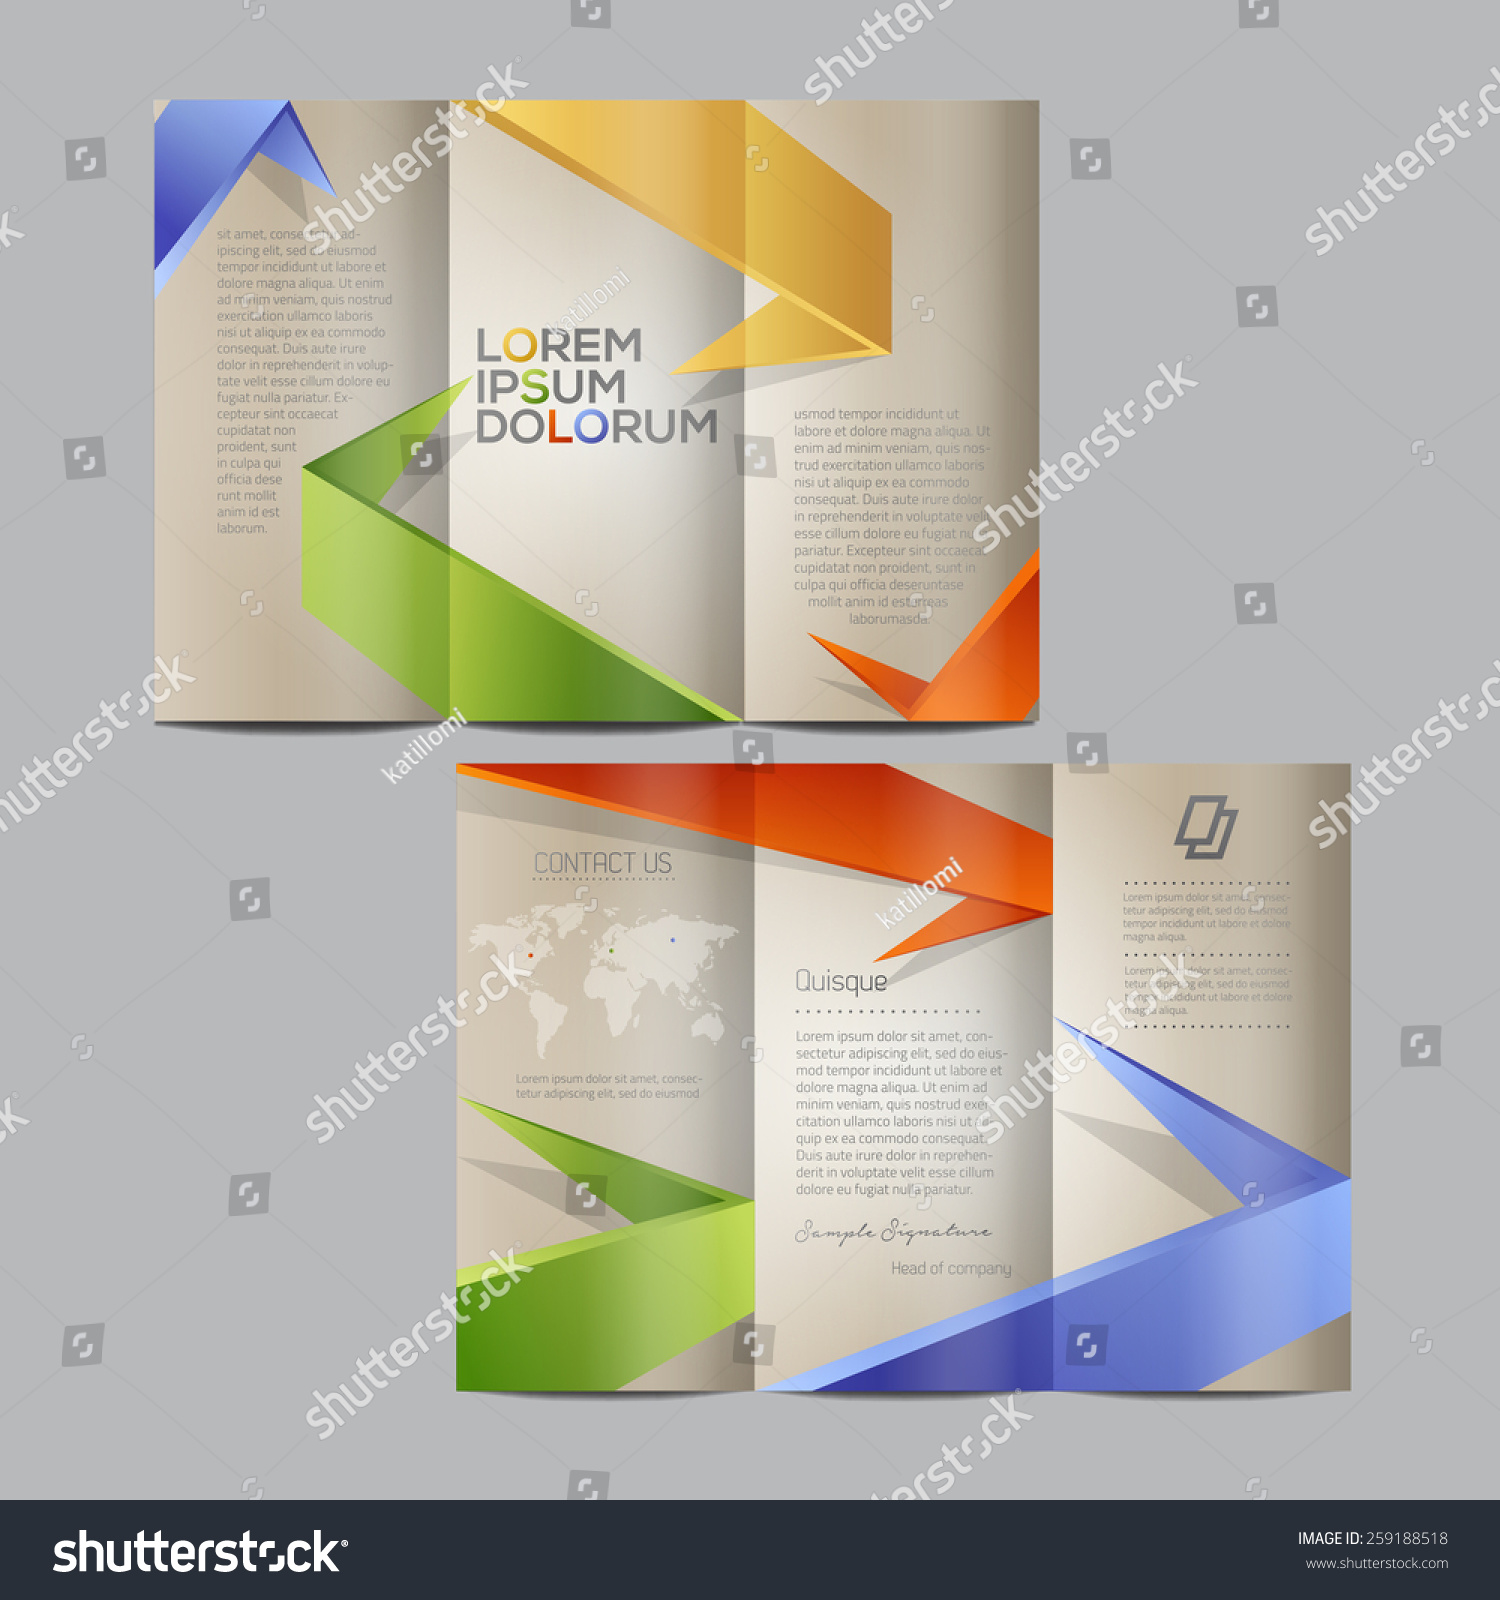 Colorful brochure template design stock vector 259188518 for Colorful brochure design